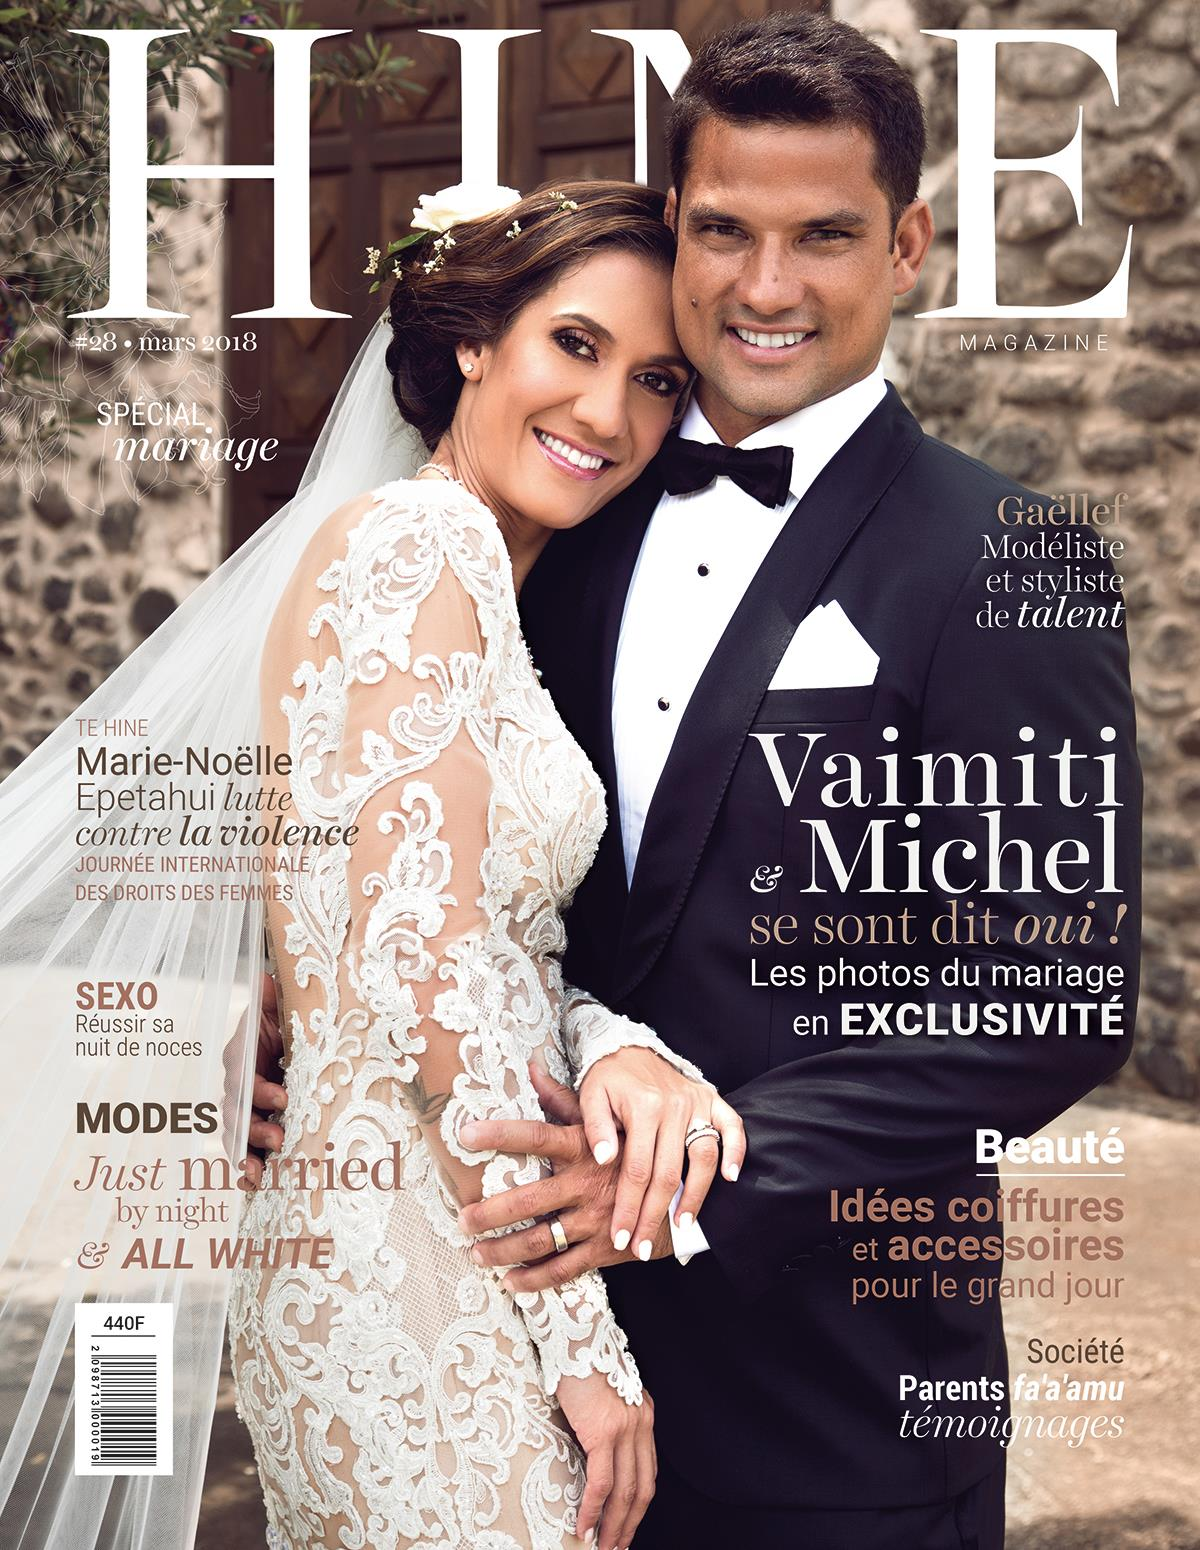 Hine- MARS 2018 - Shopping/accessoires coiffure spécial mariage flower by Mademoiselle M p.56